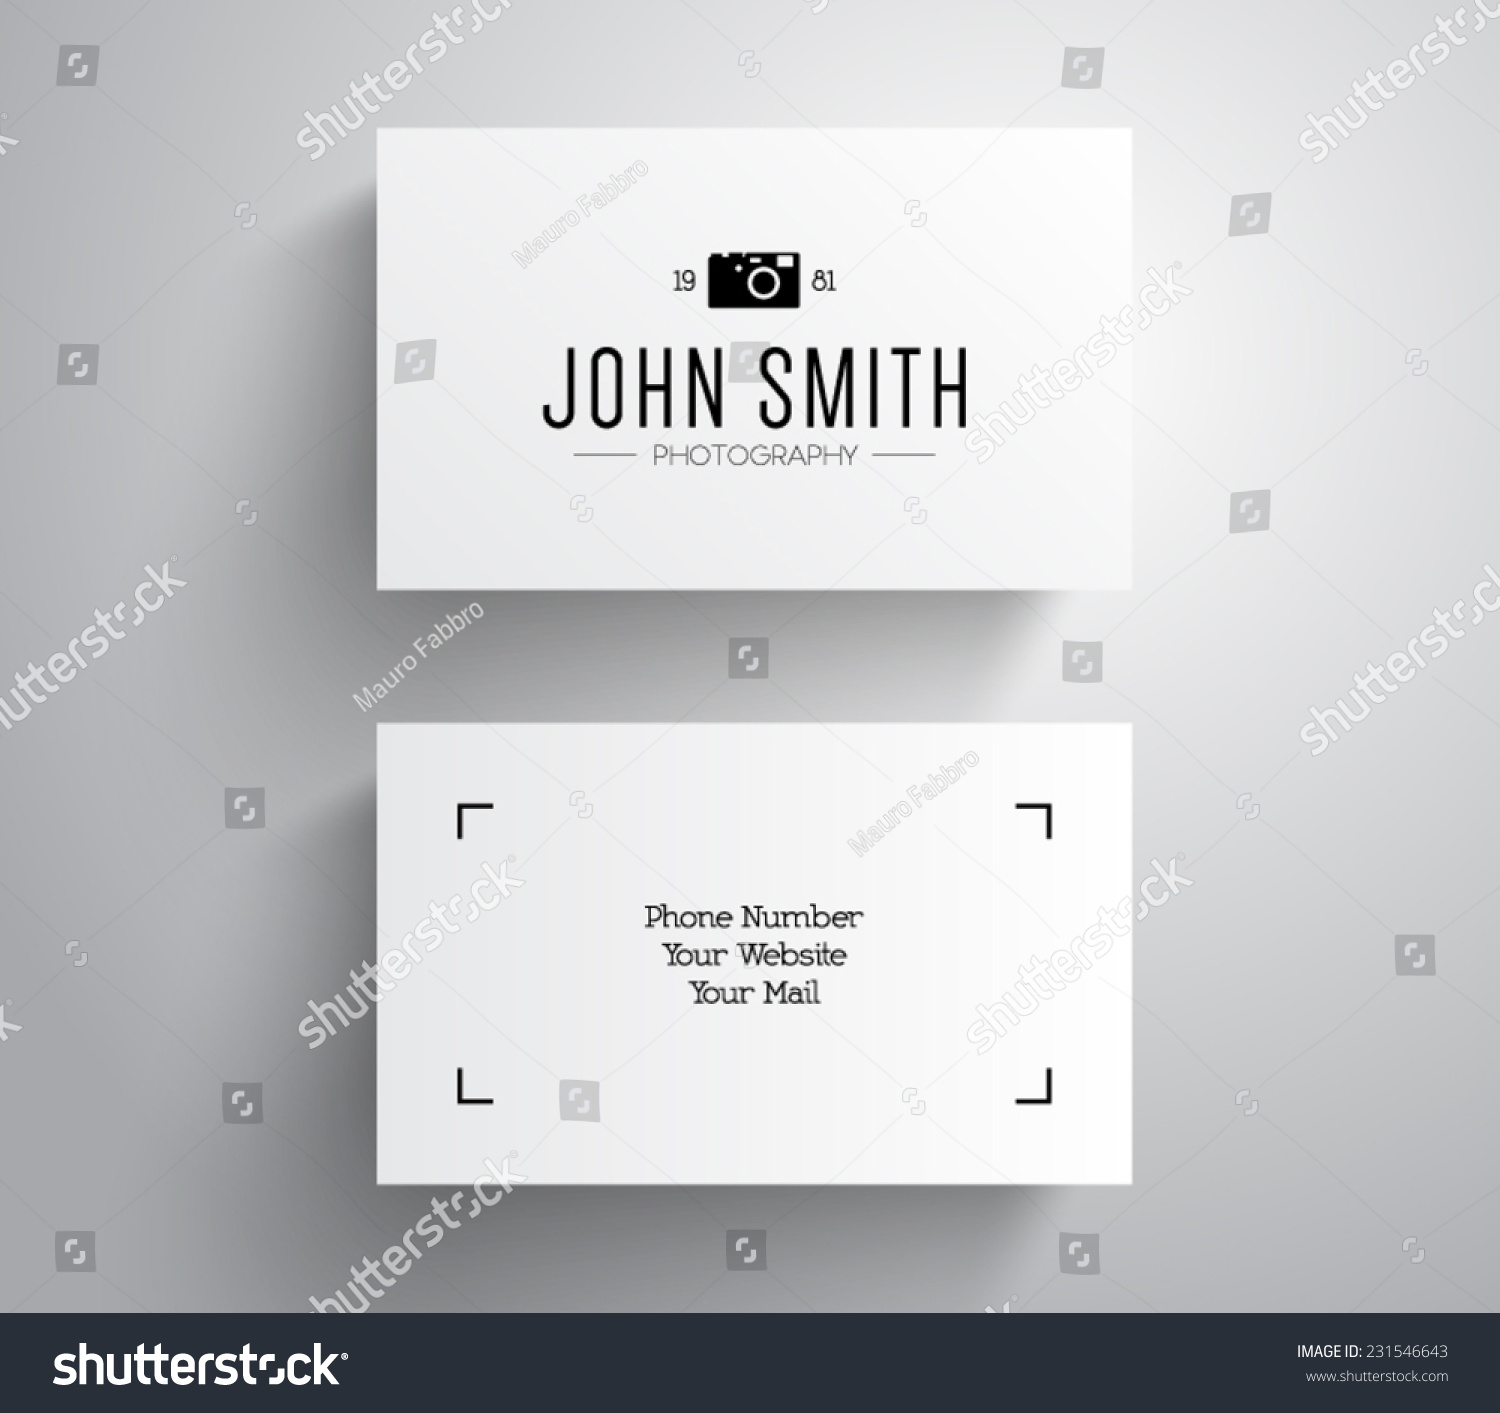 Vector Photographer Photography Business Card Template Stock - Photography business card template